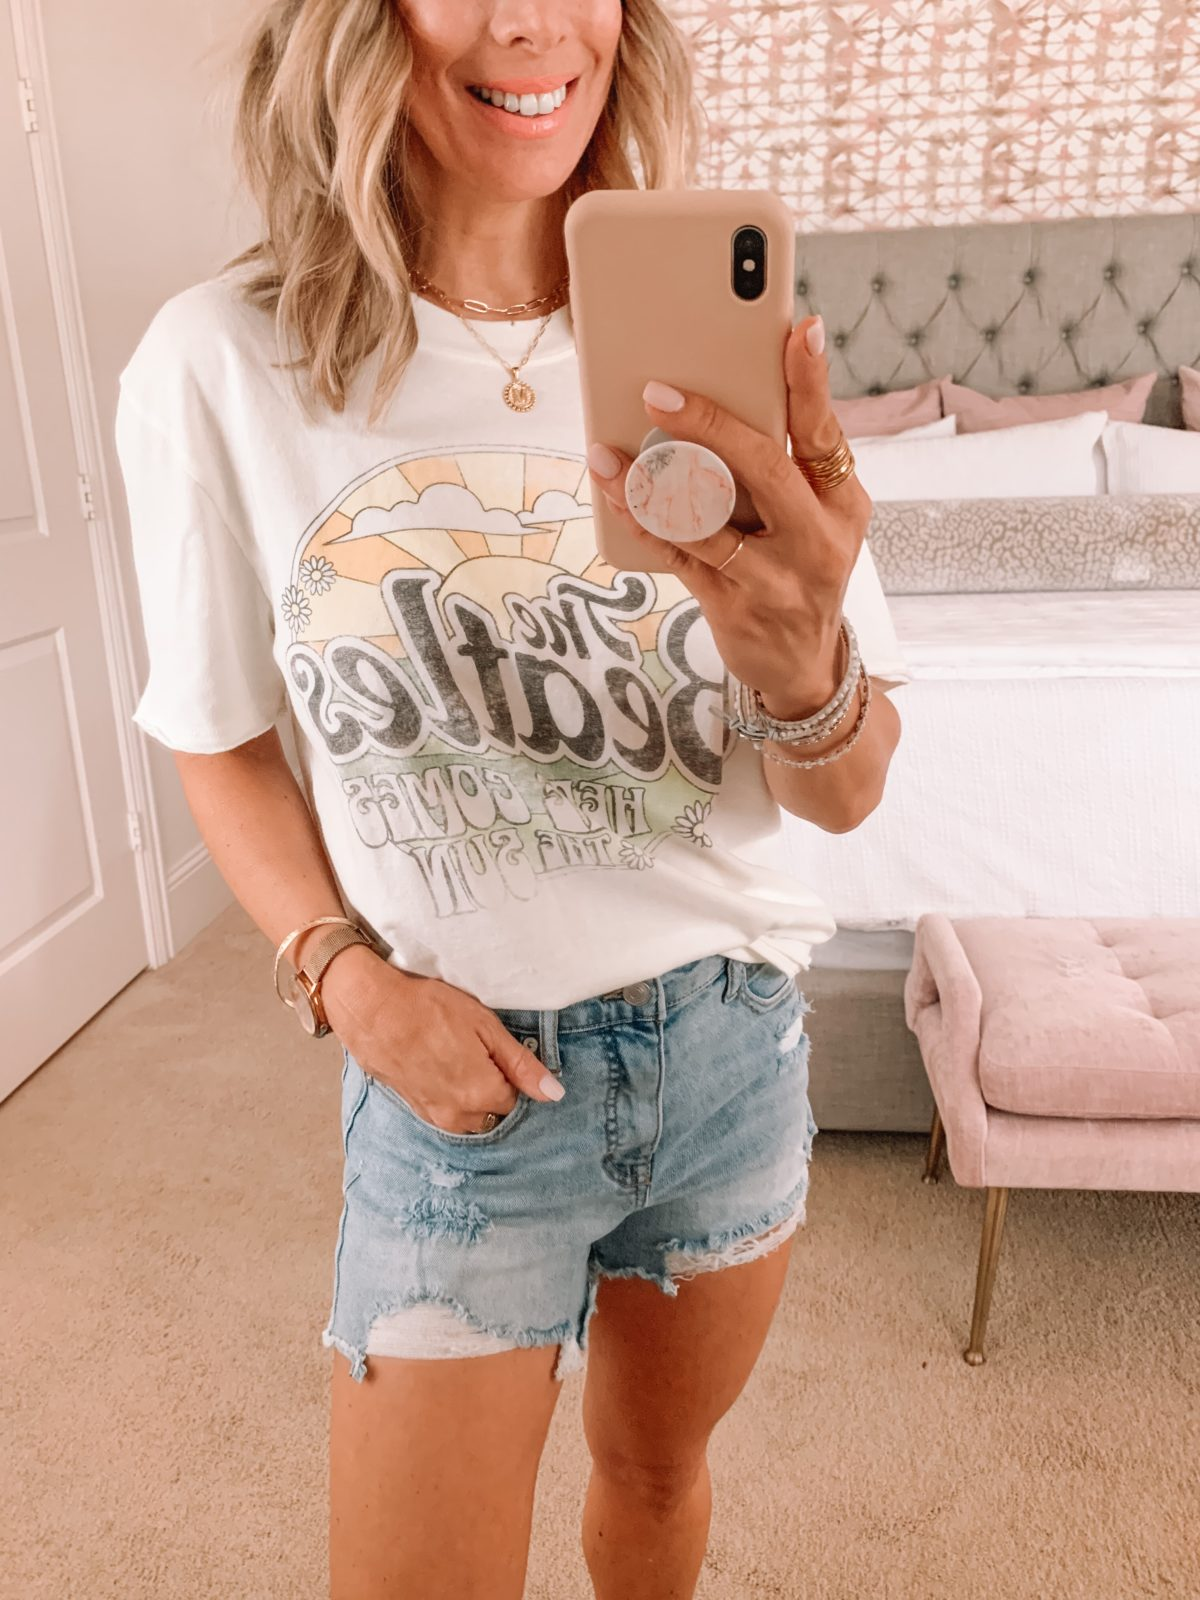 Walmart jean shorts and Beatles tee